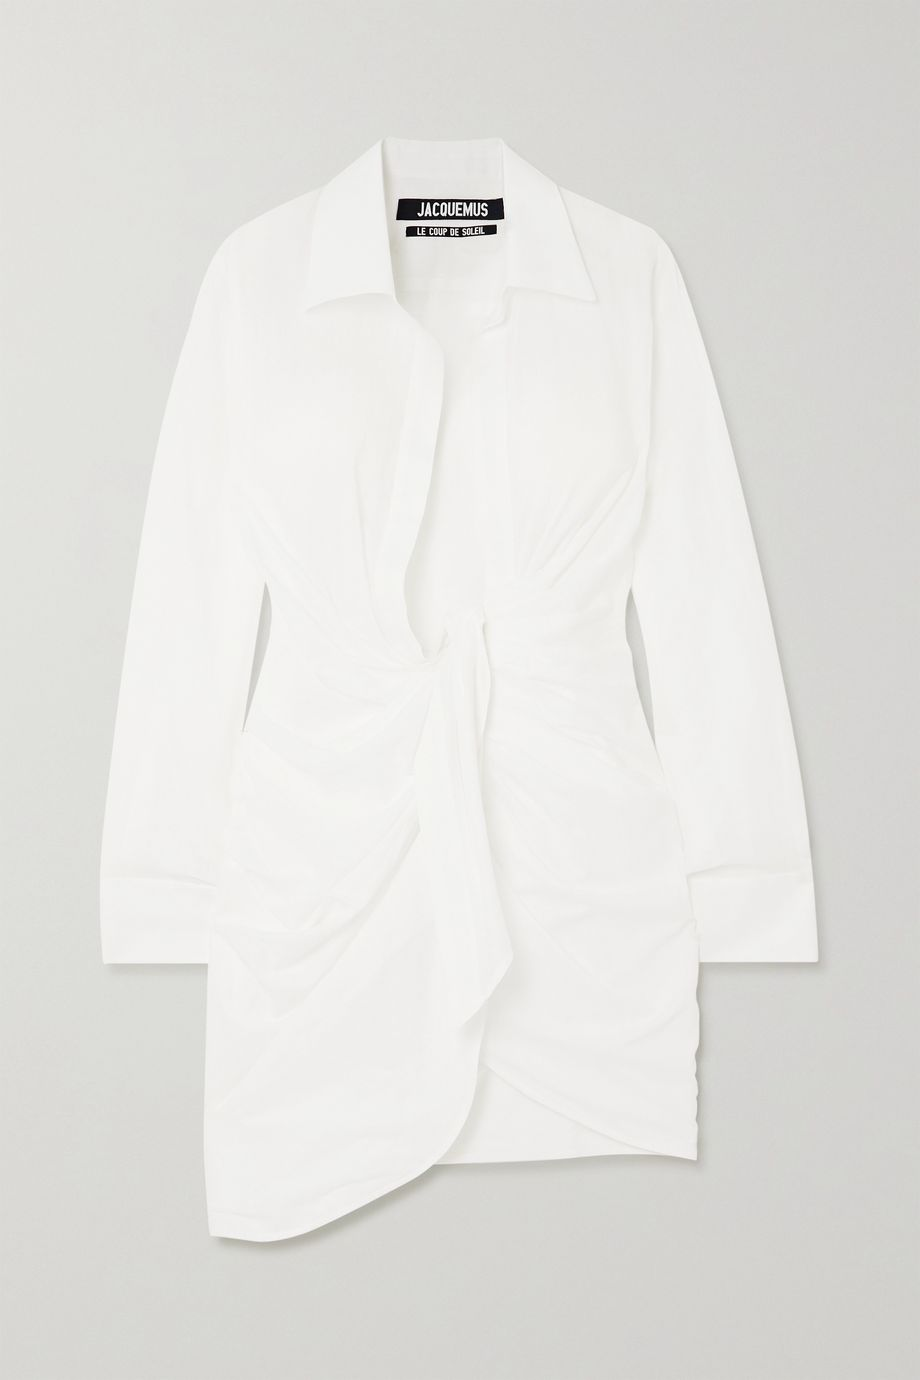 Jacquemus Bahia gathered cotton mini dress